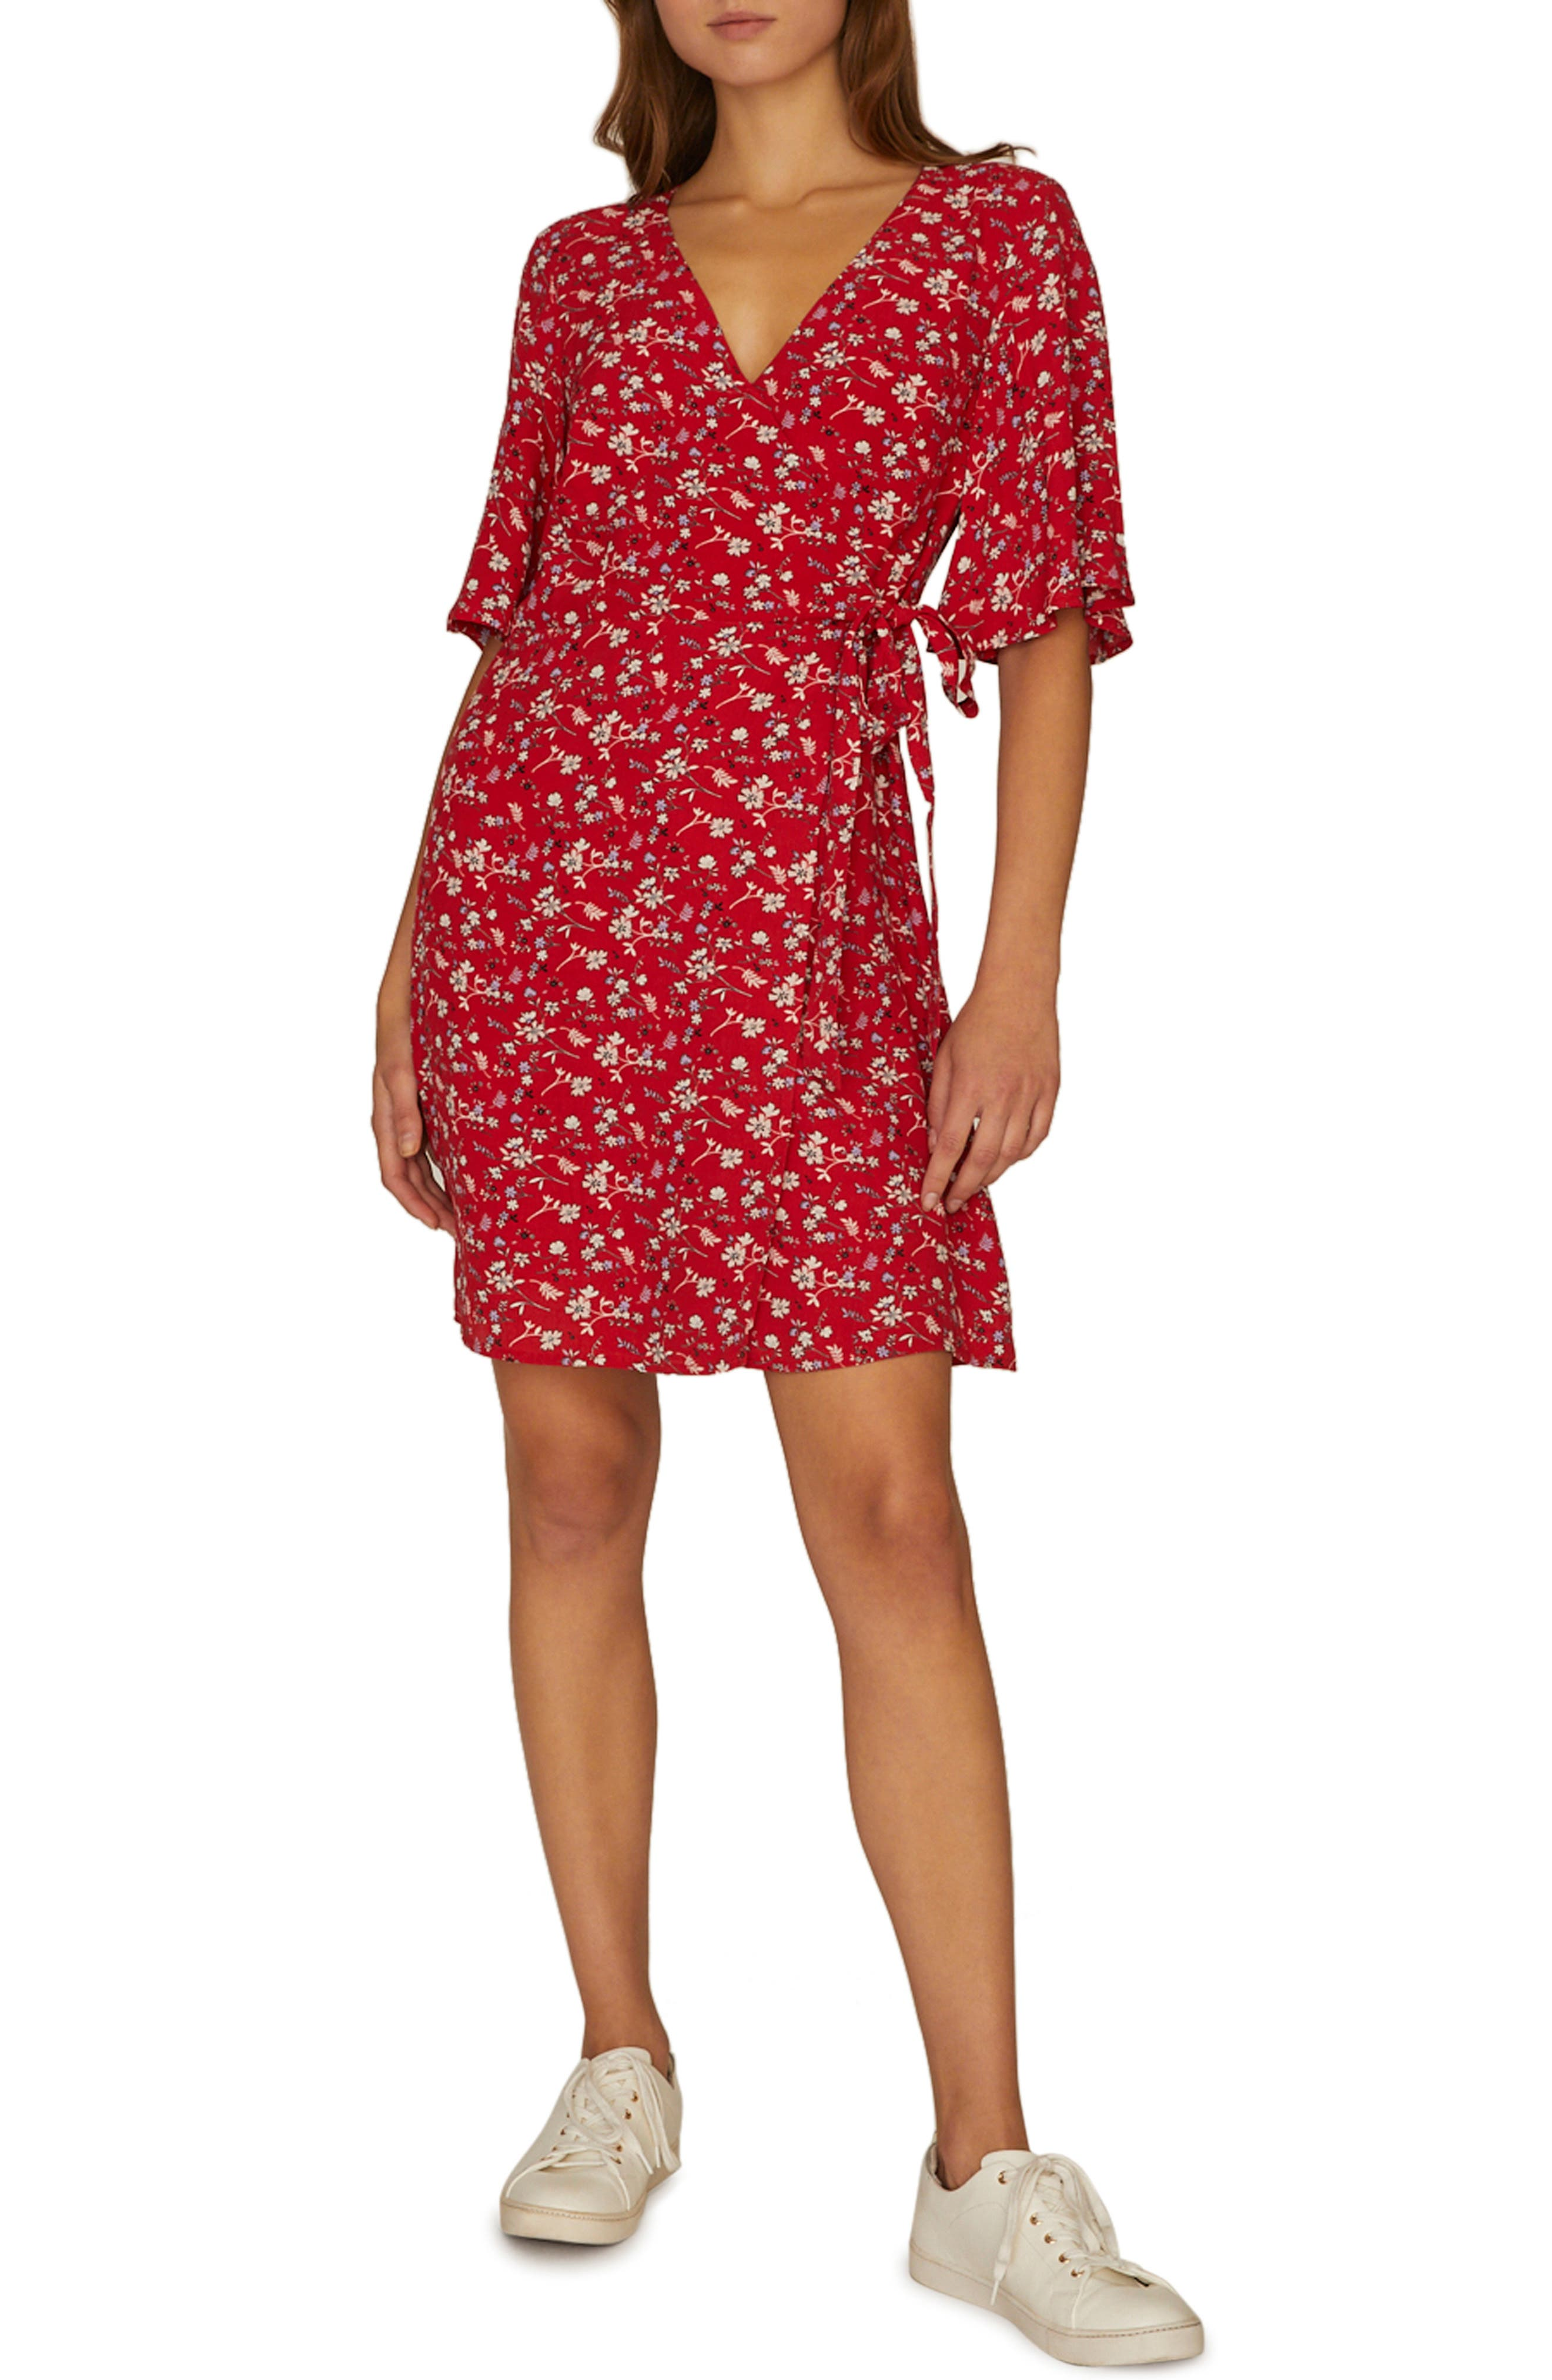 SANCTUARY, Girl on Fire Faux Wrap Dress, Main thumbnail 1, color, SIMPLY RED